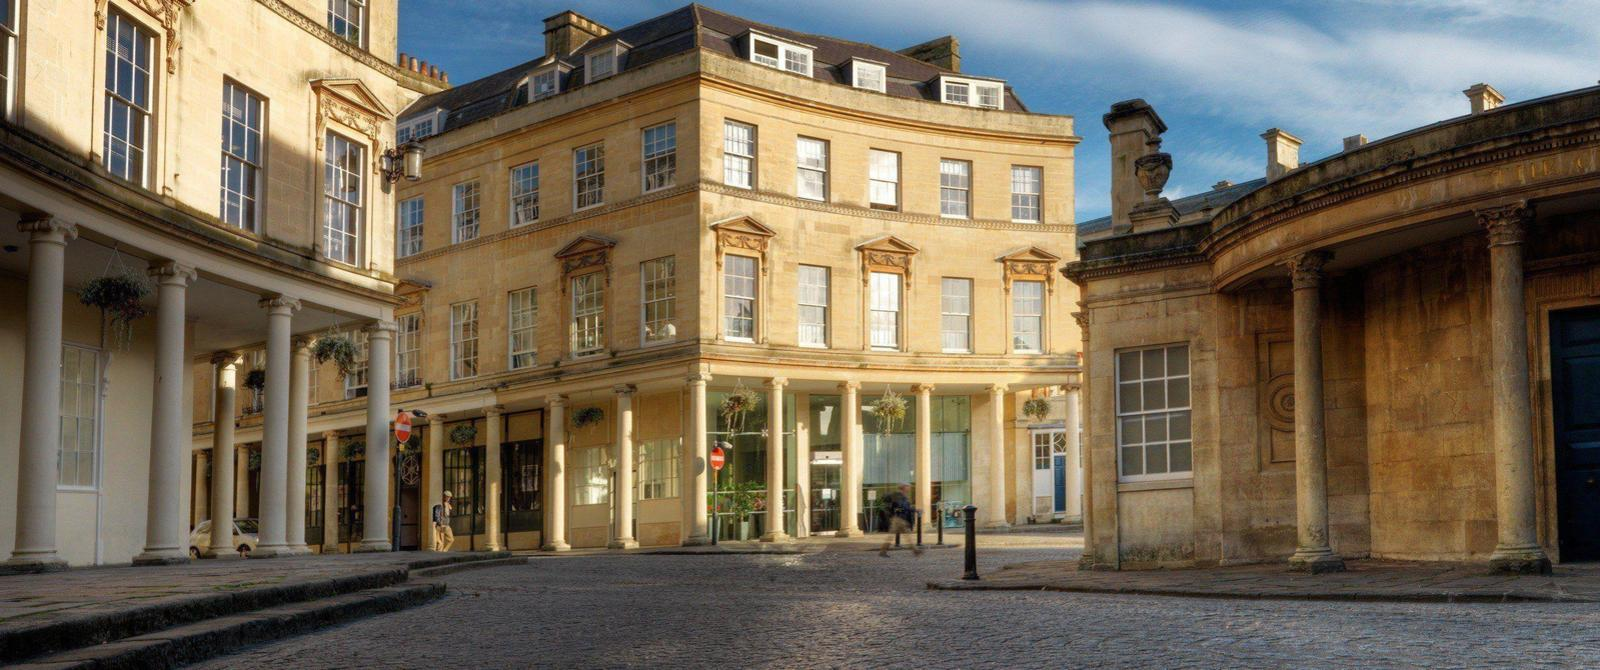 Image of spa buildings and colonnade in central Bath